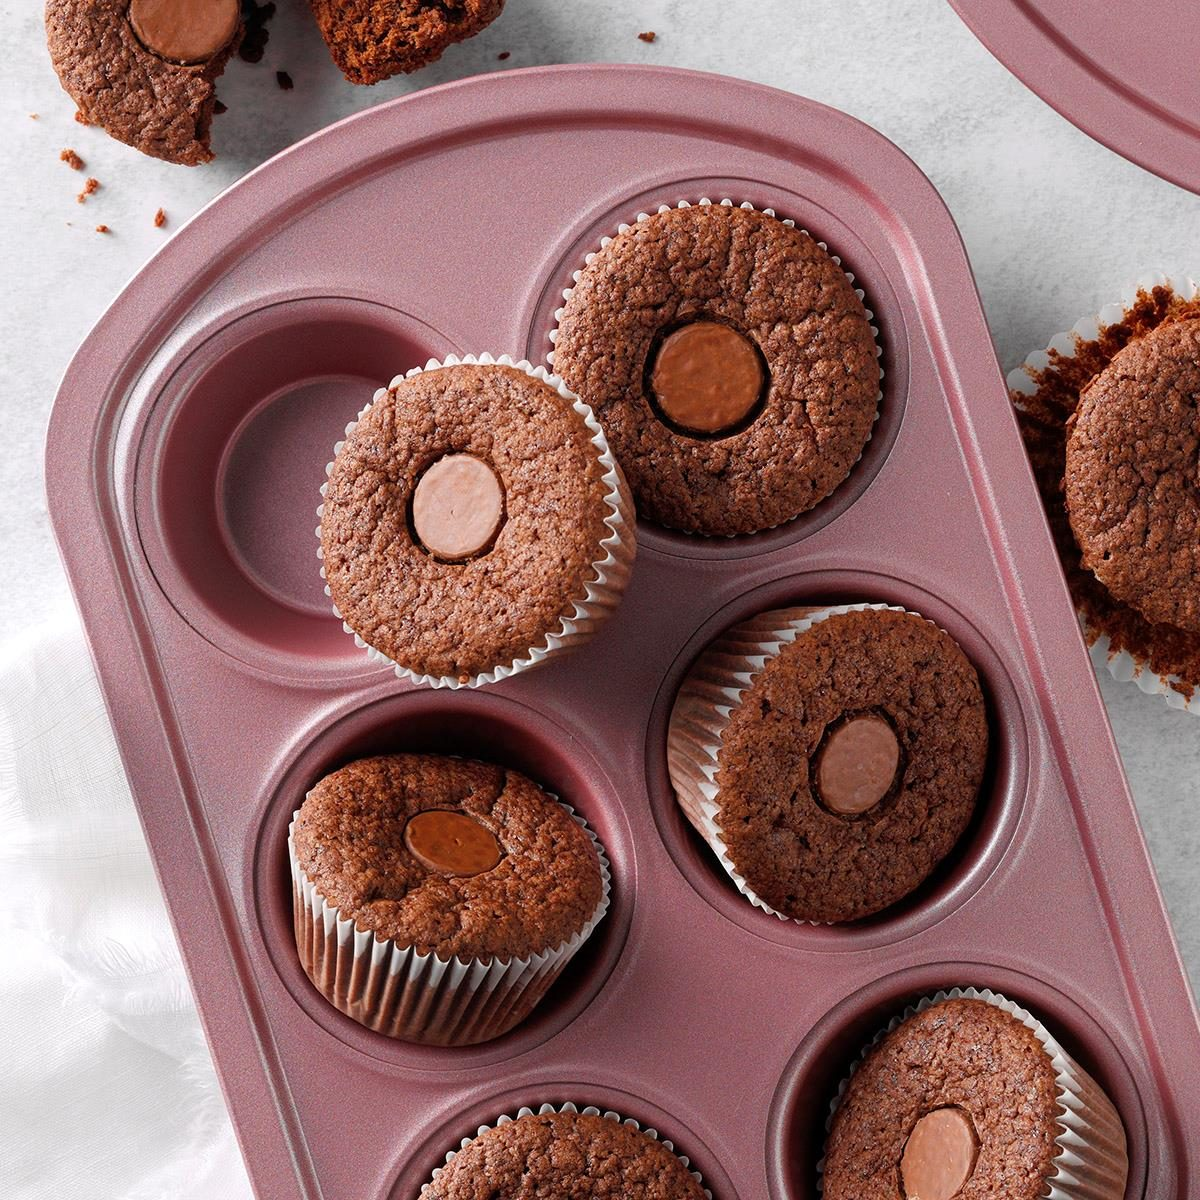 Exps Cupcakes Kiss Brownie Tohfm16 9284 B09 22 3b 1